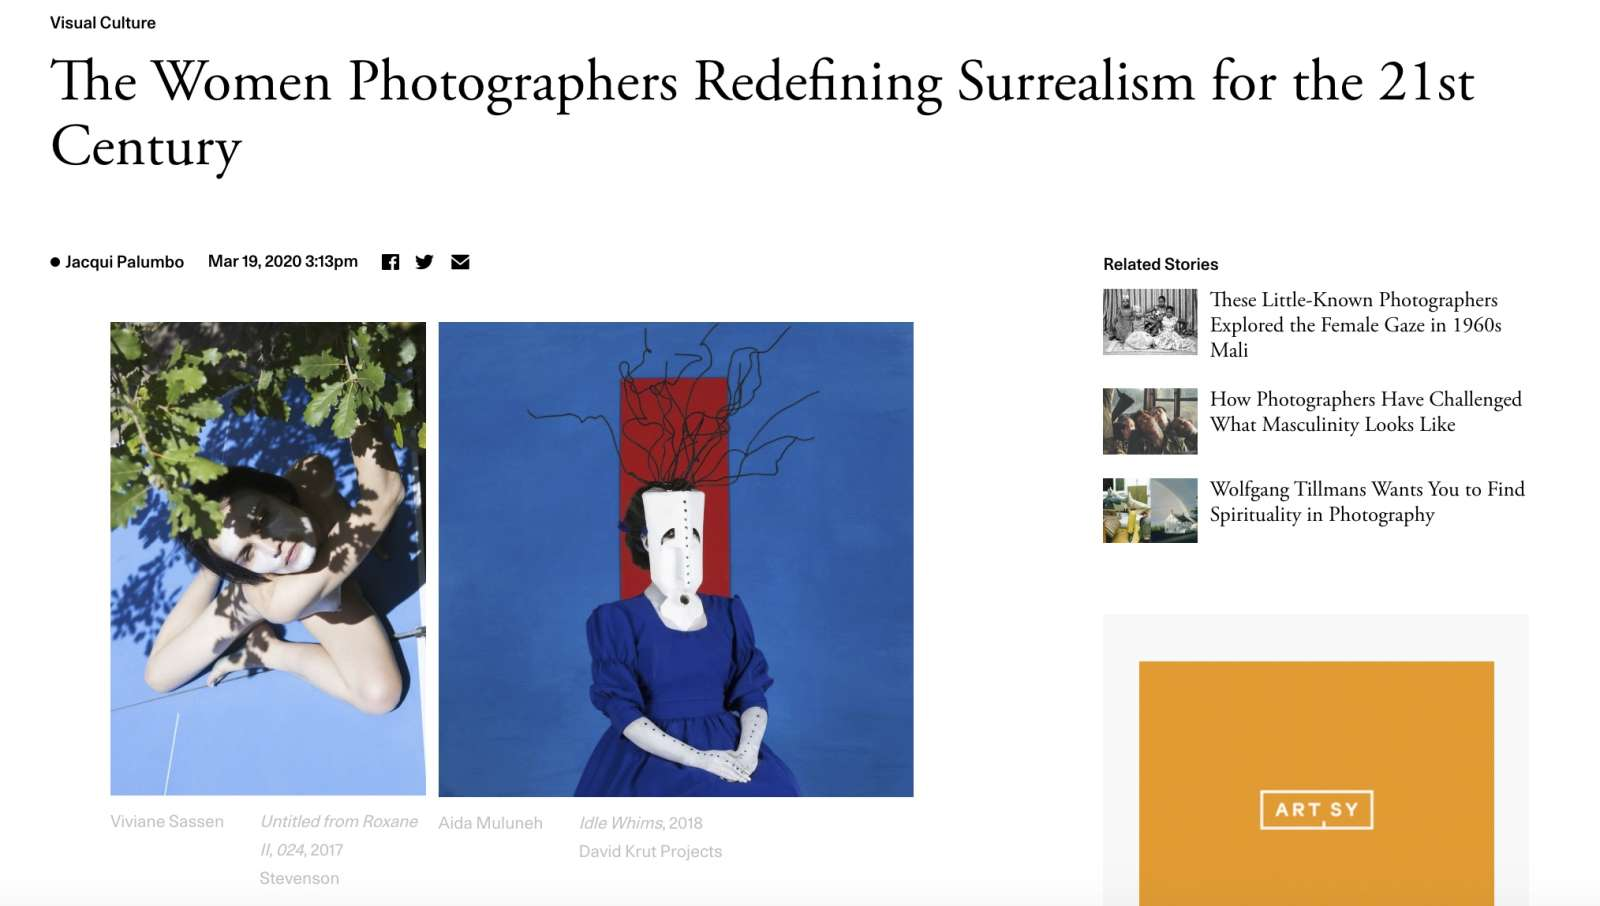 The Women Photographers Redefining Surrealism for the 21st Century